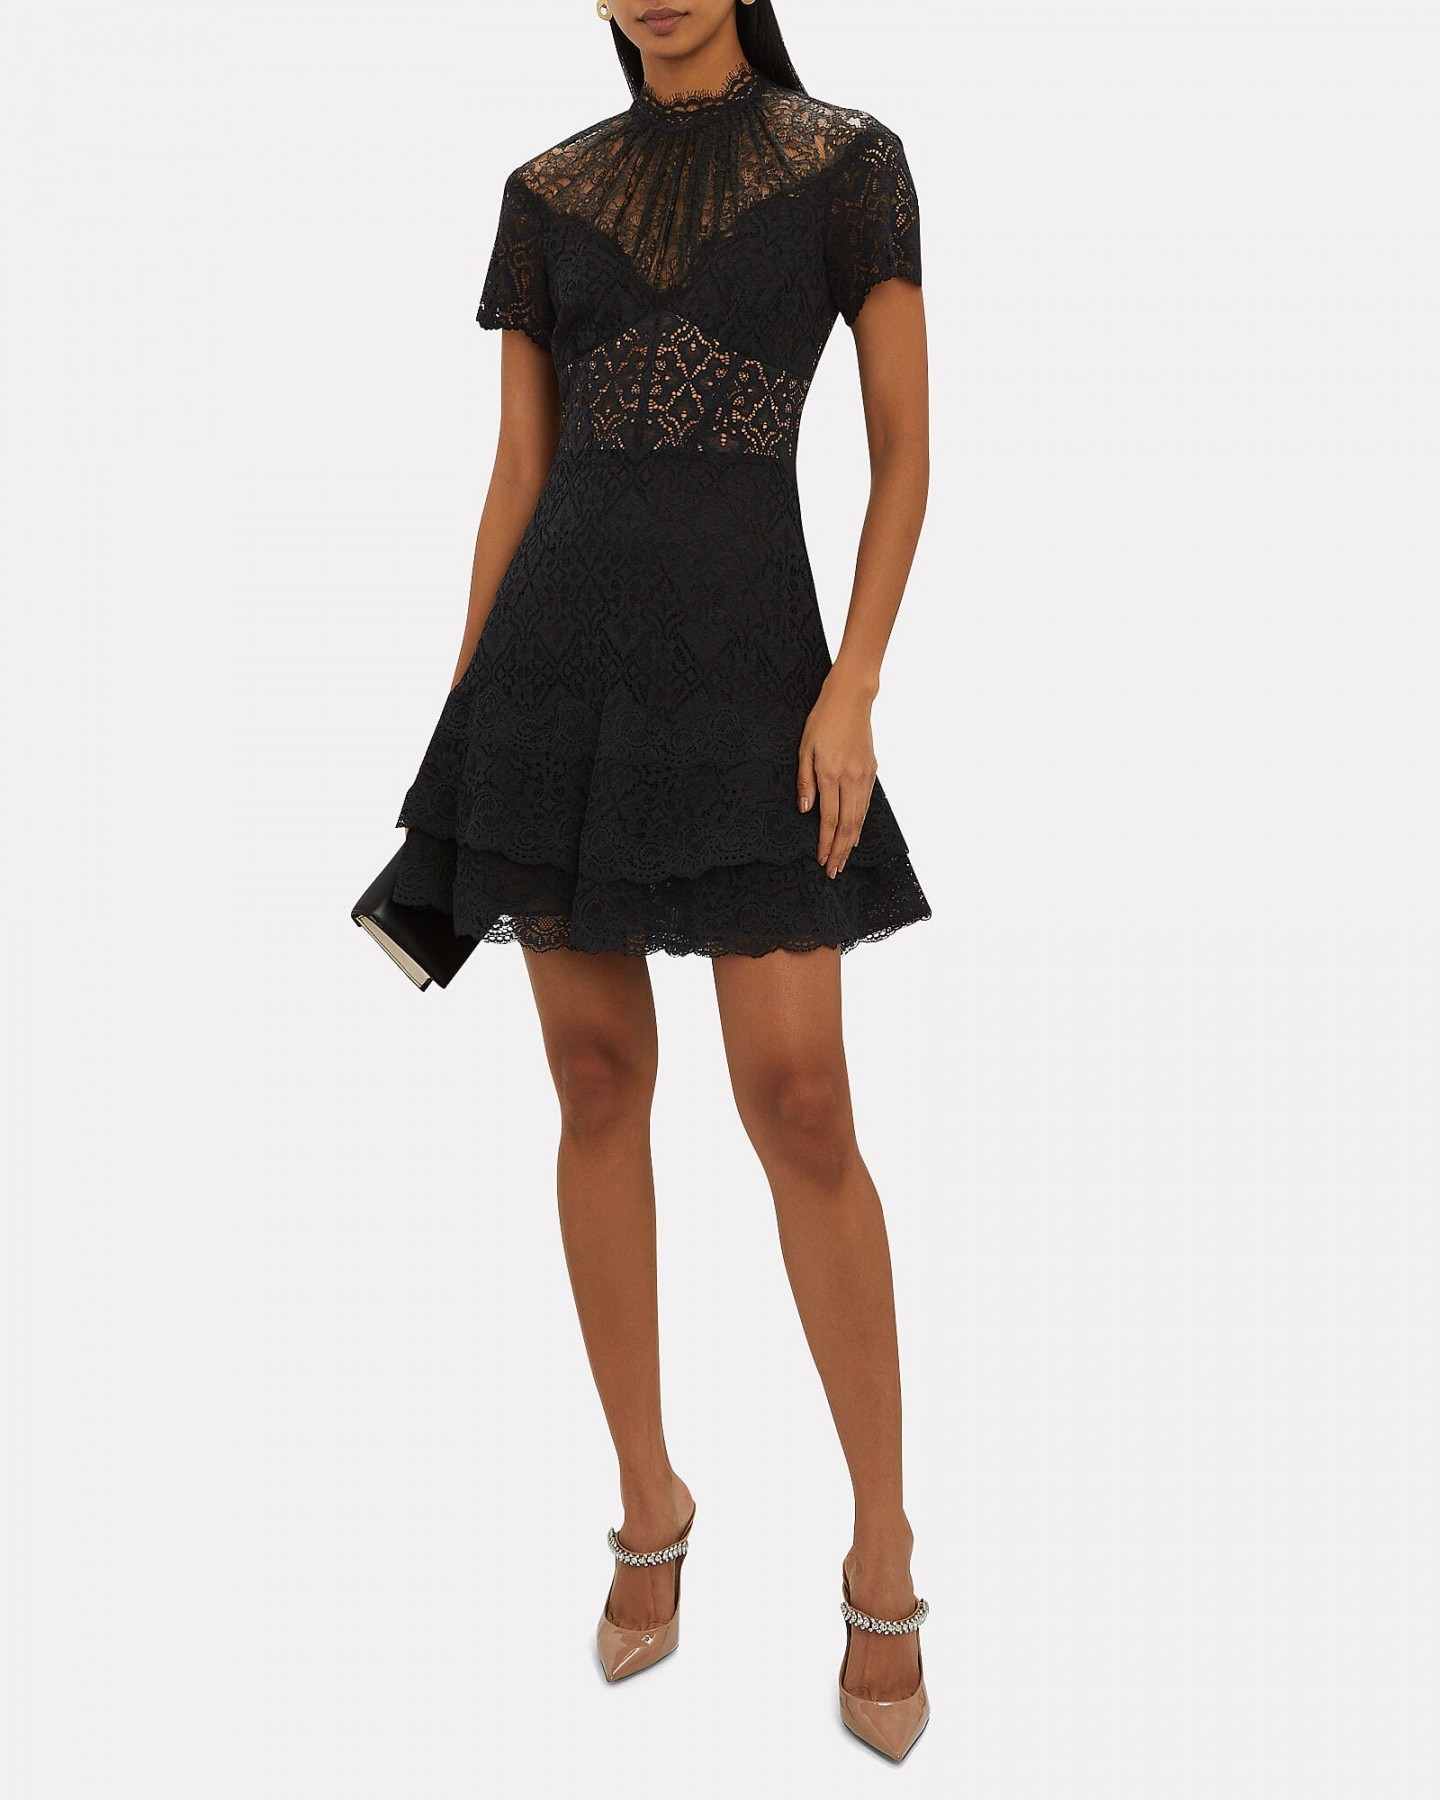 JONATHAN SIMKHAI Mixed Lace Bustier Mini Dress